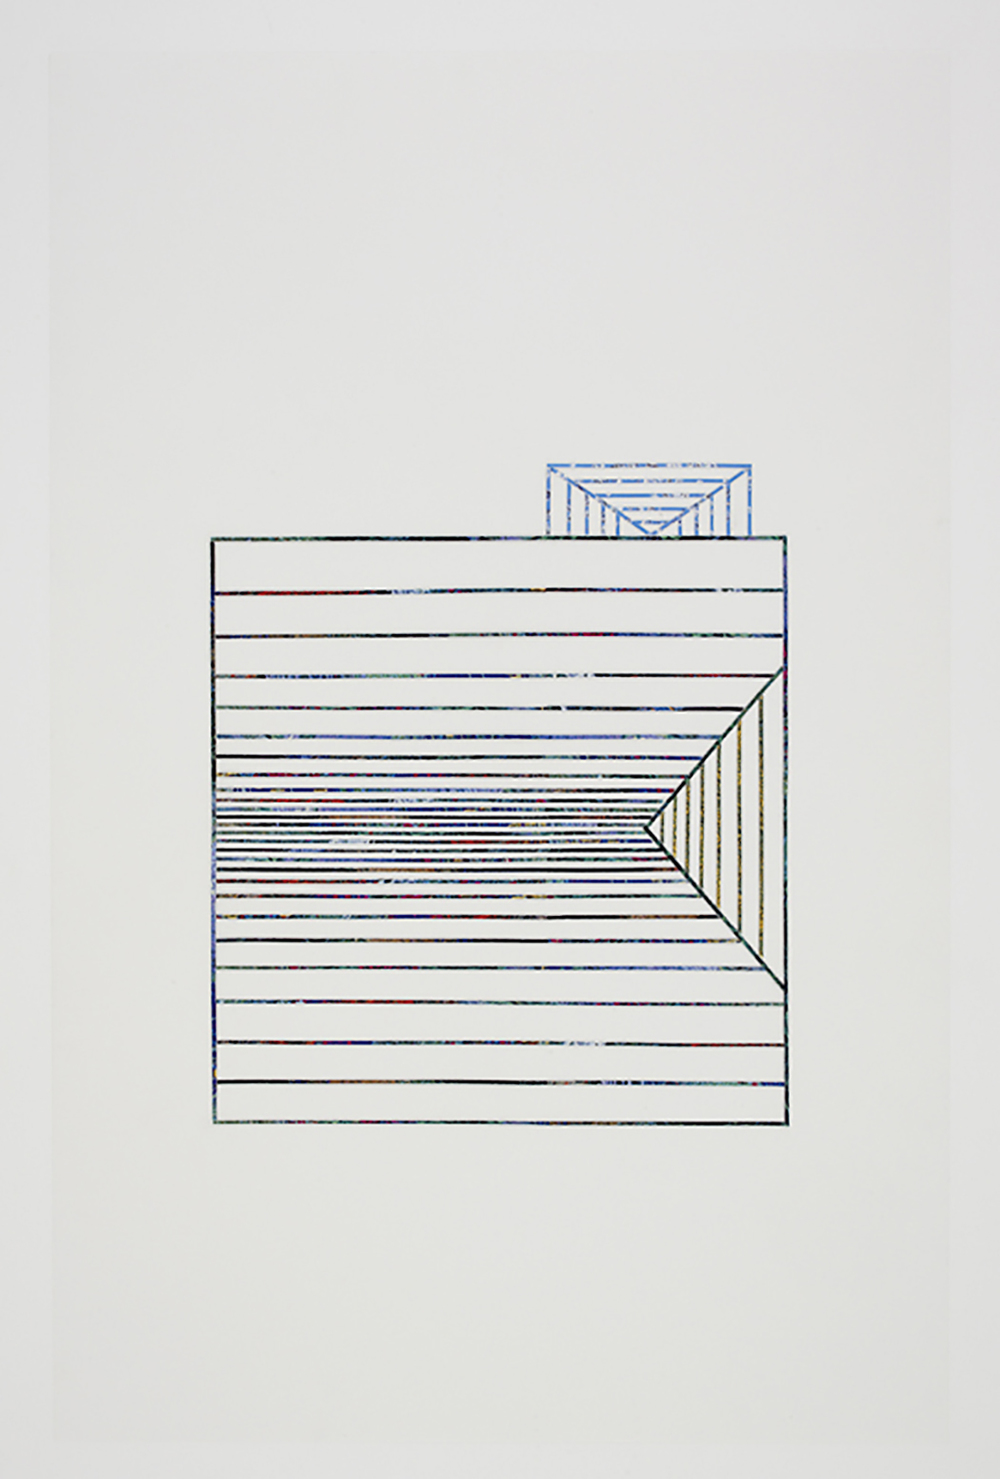 Roof #10, 2010, collage on drafting film paper, 34 x 22 inches/ 86 x 56 cm